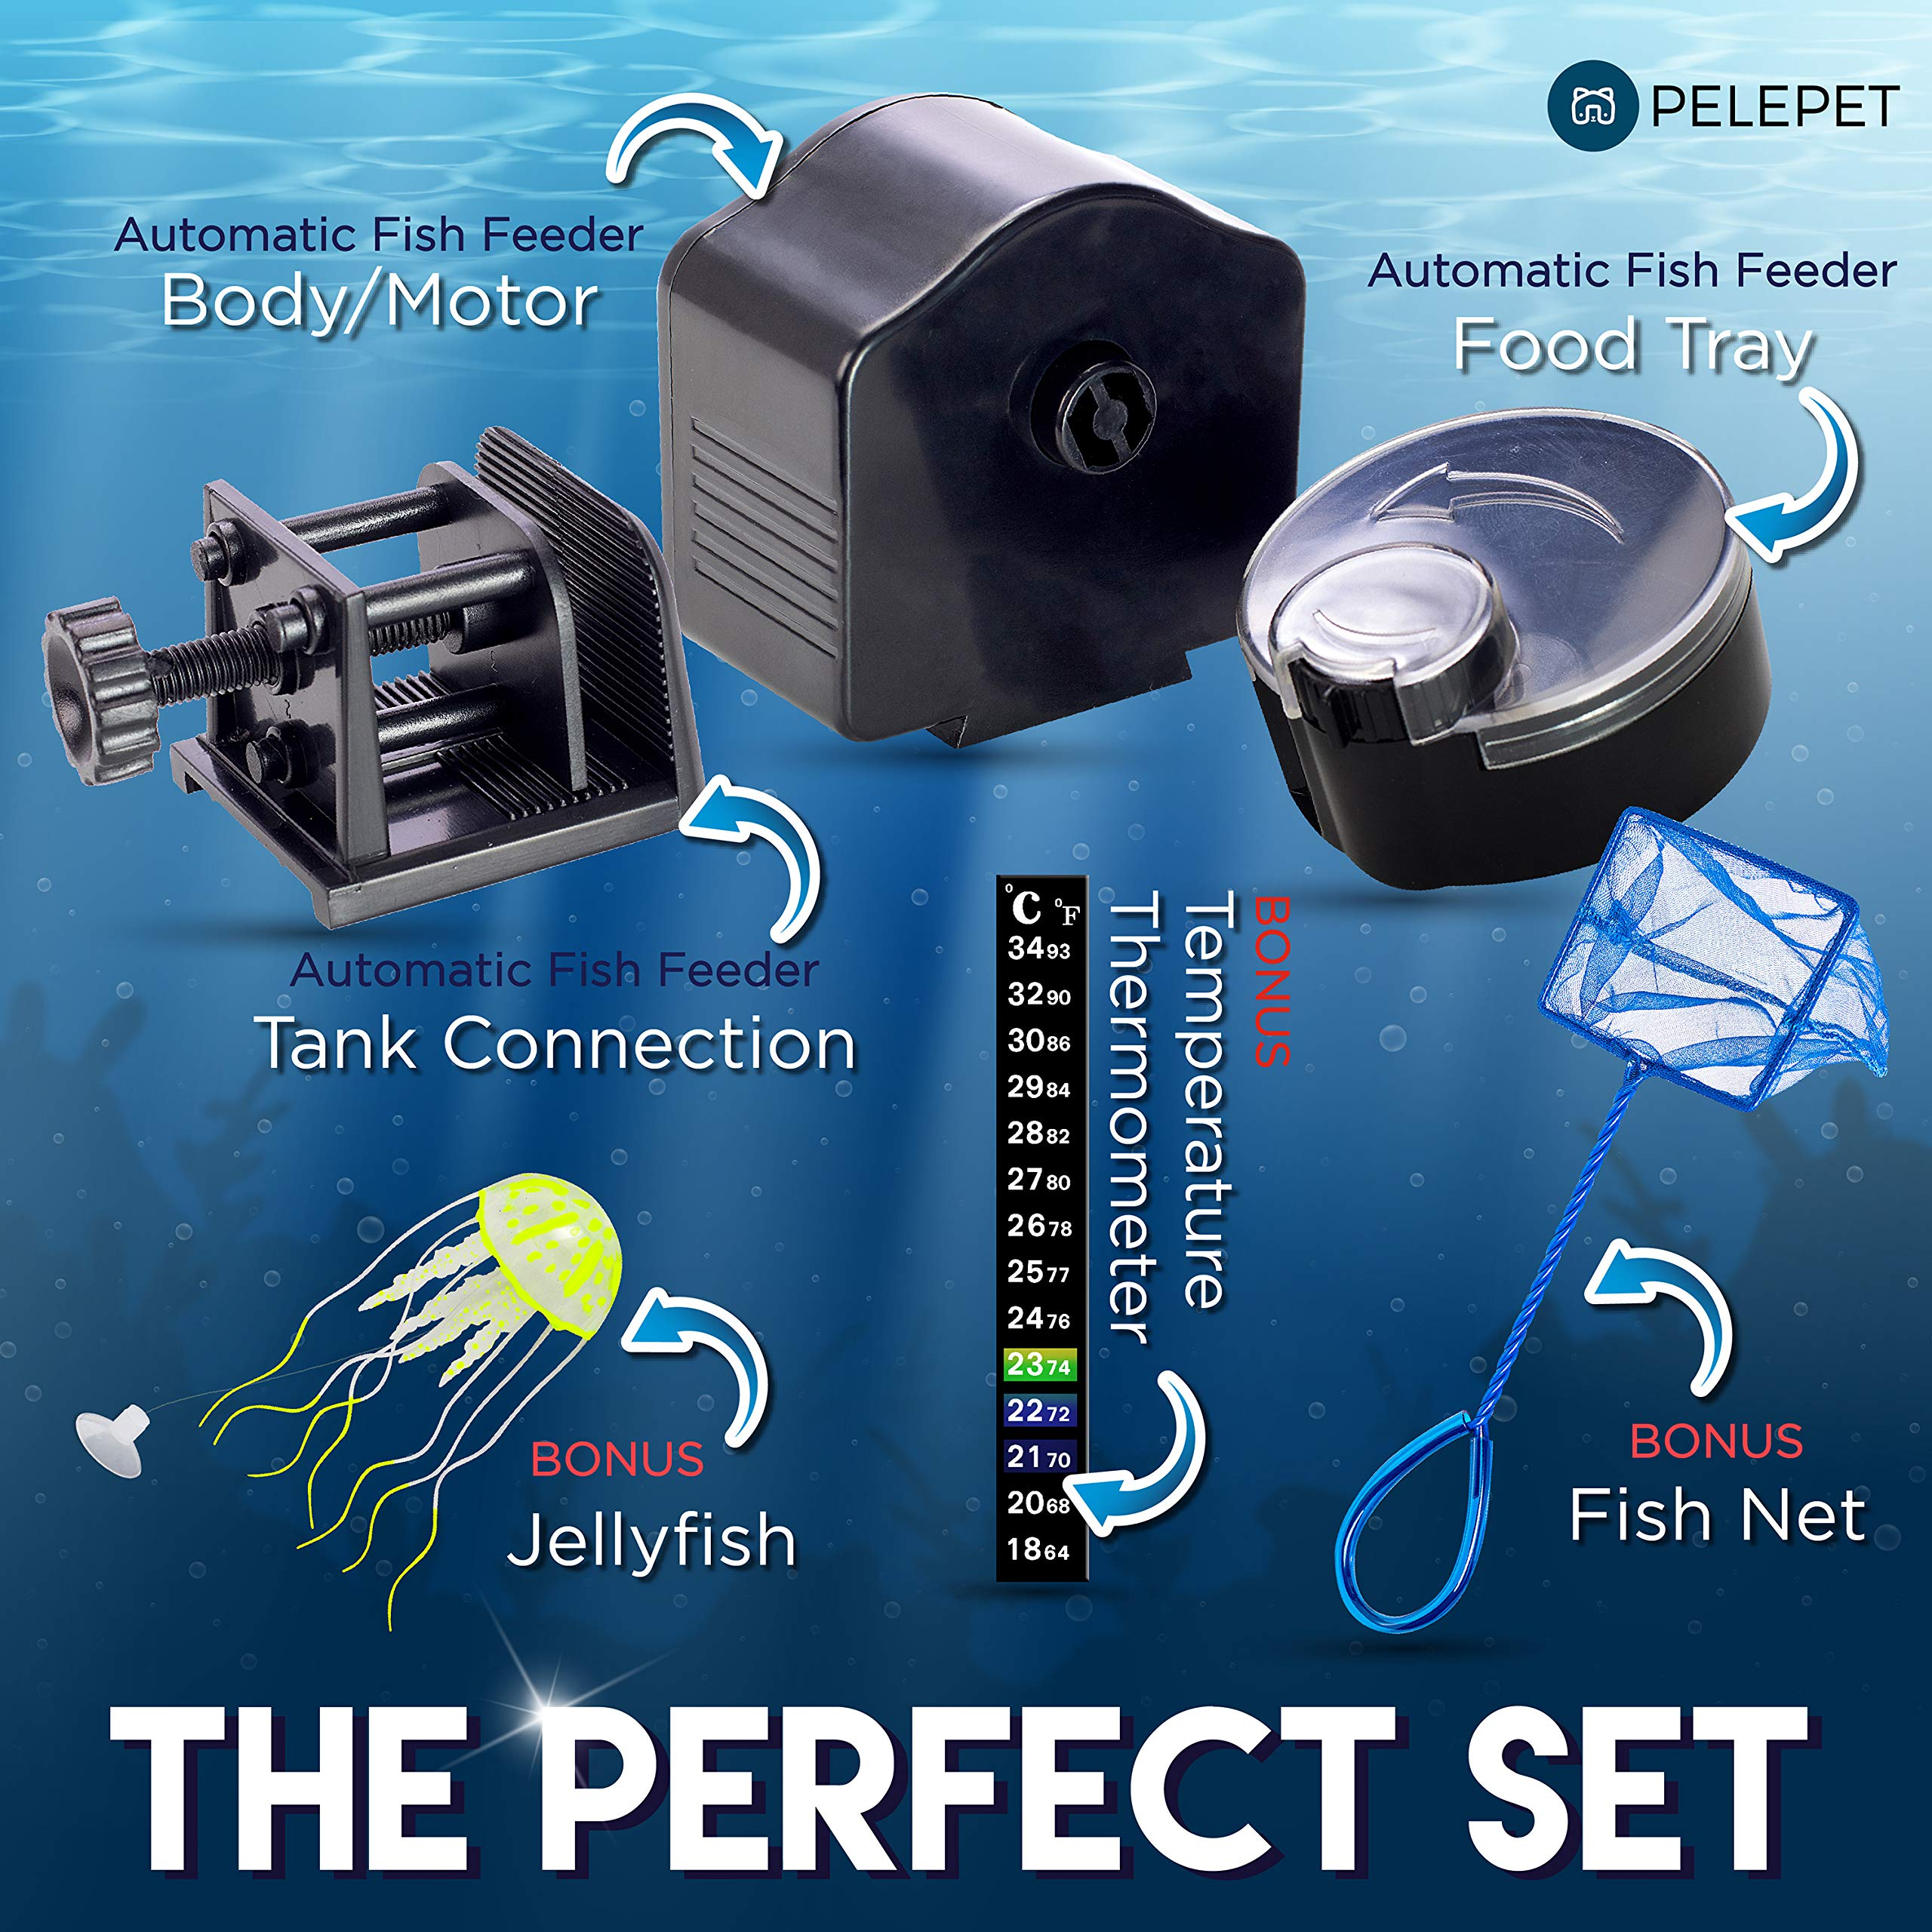 PELEPET Automatic Fish Feeder - Aquarium Feeder - Fish Food Vacation Feeder - Auto Feeding Unit + Net for Fish Tank, Thermostat & Jelly Fish - Everyday Fish Food Dispenser by PELEPET (Image #3)